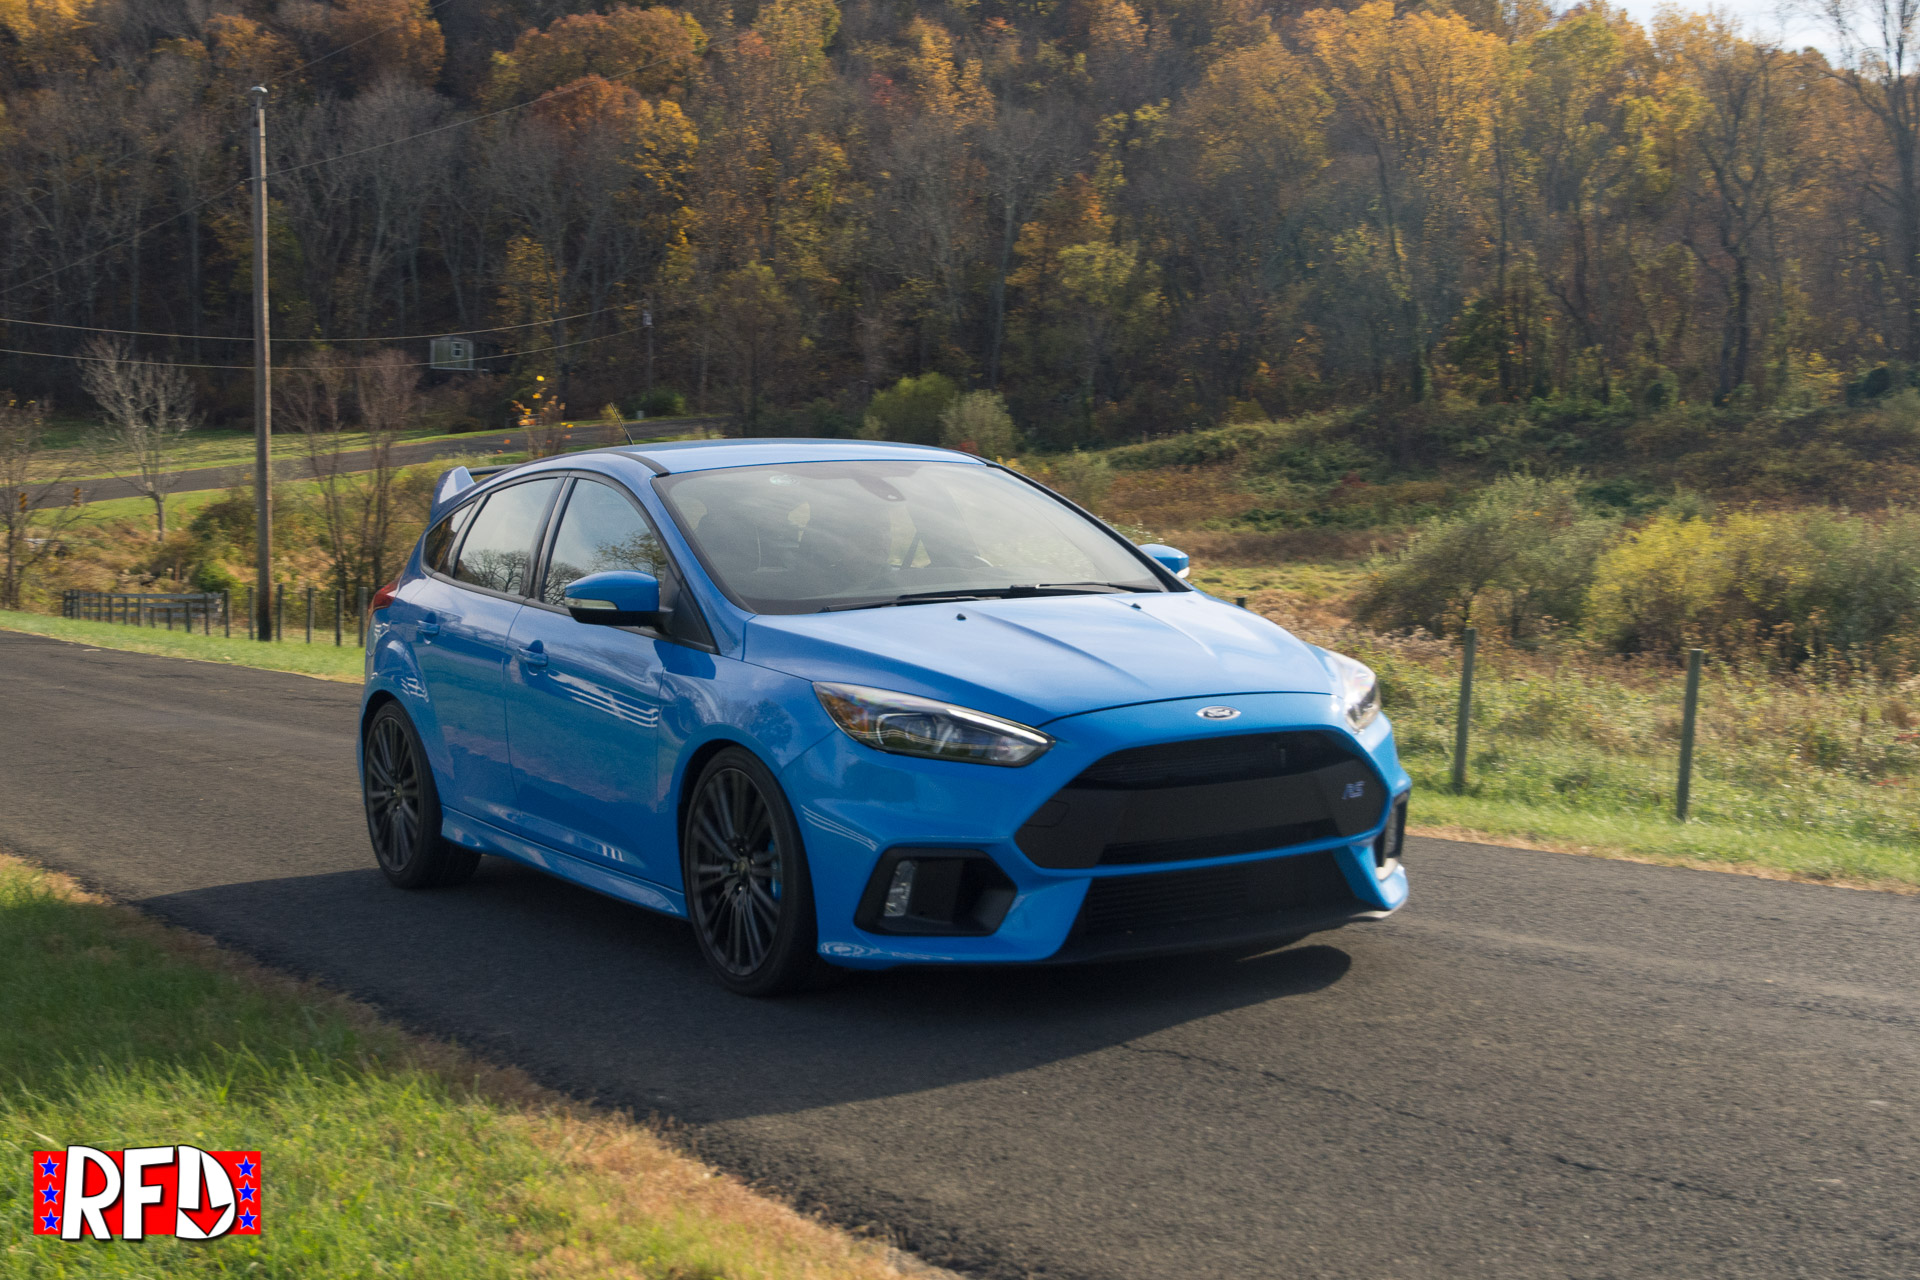 2016 Ford Focus Rs Jtt 1238 Right Foot Down